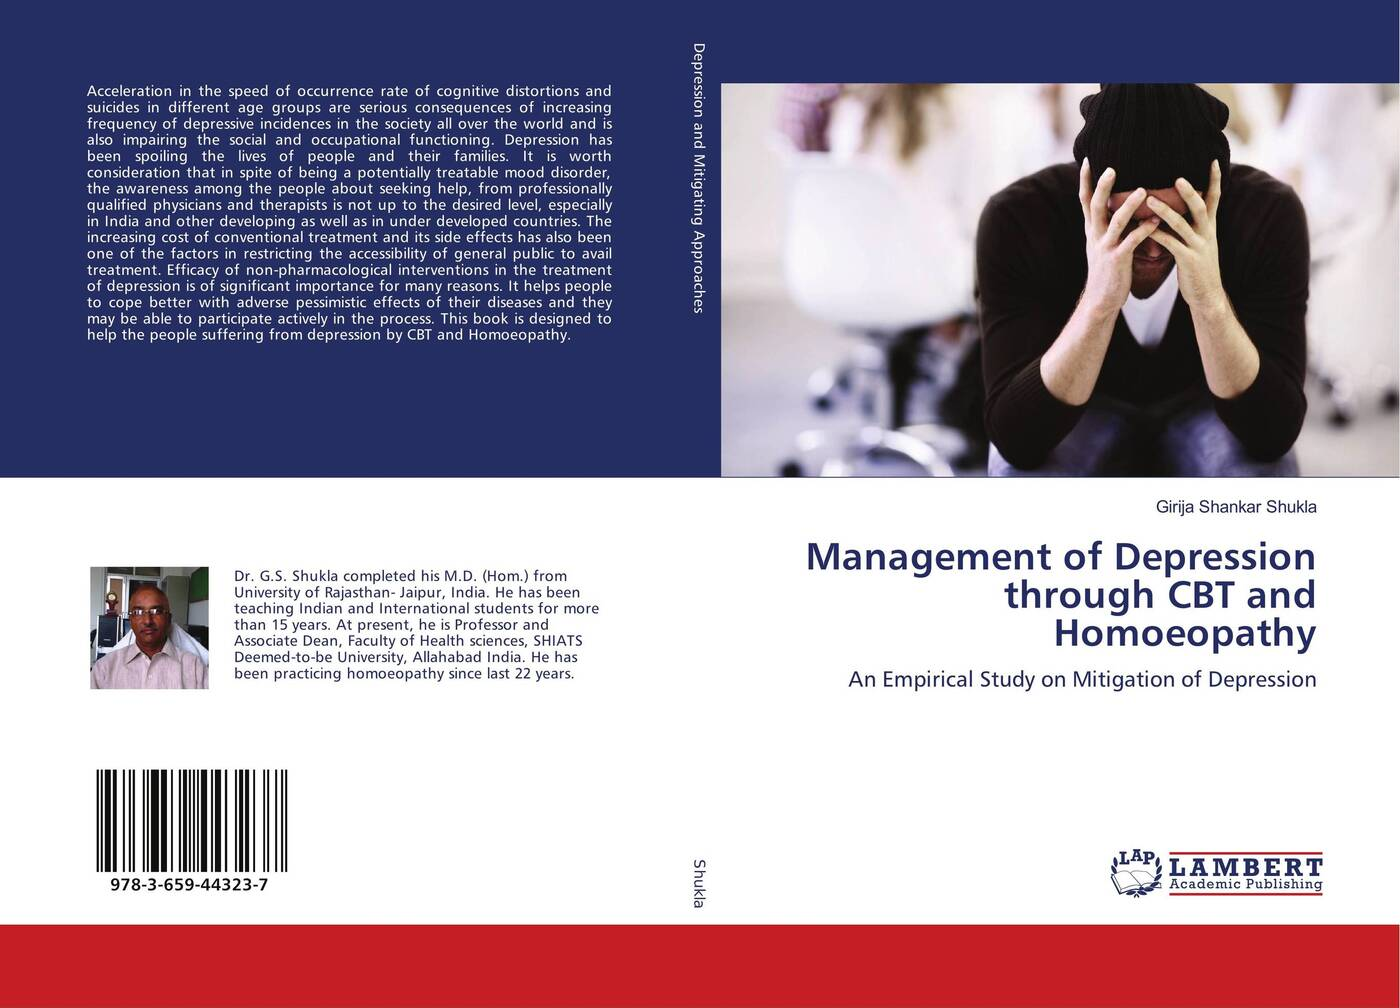 Management of Depression through CBT and Homoeopathy